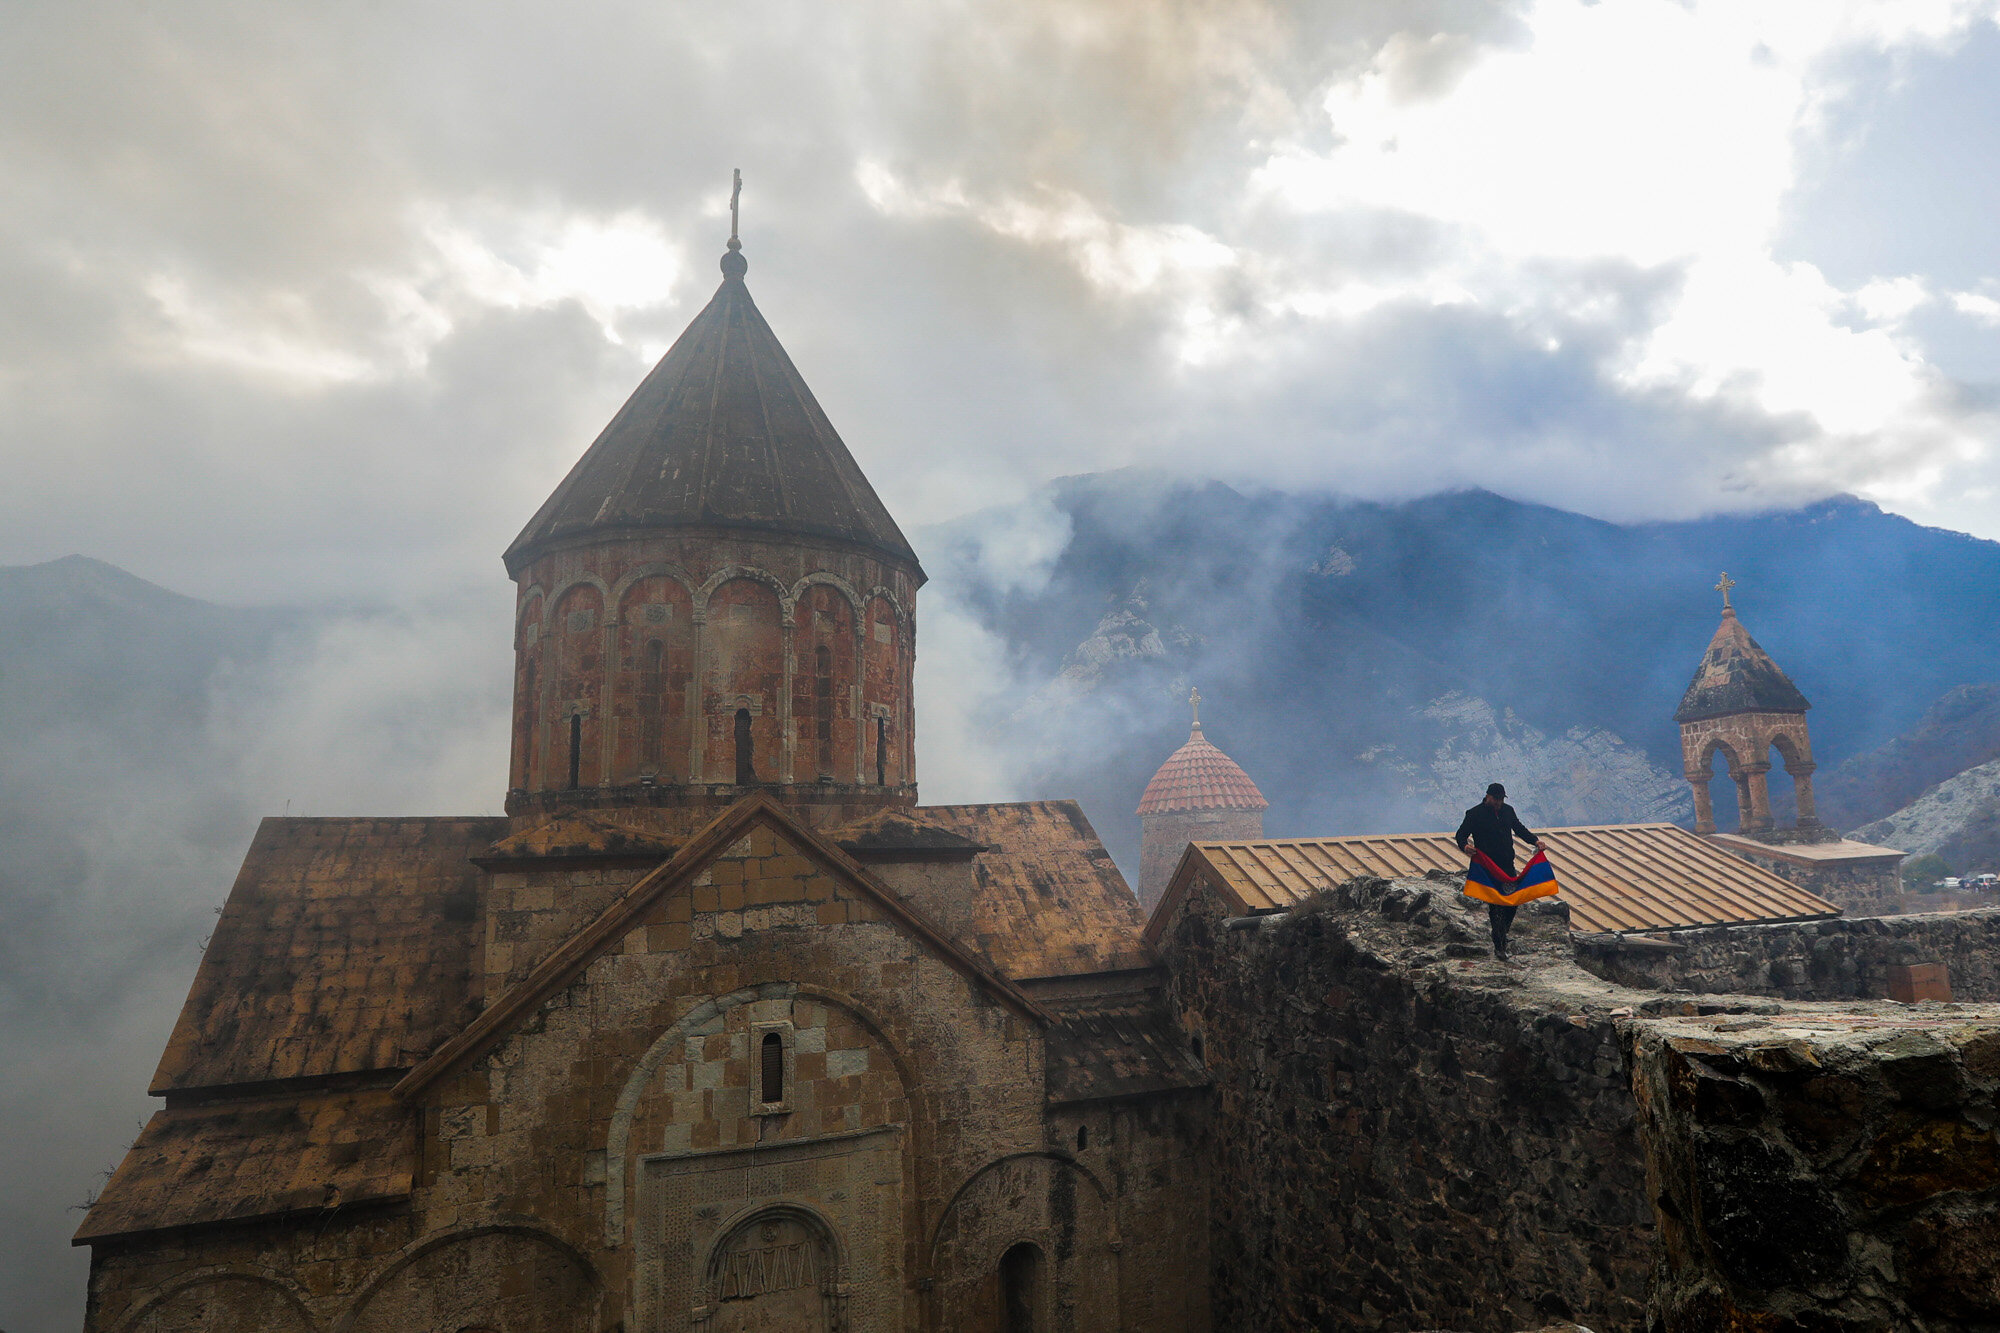 A man with an Armenian national flag visits the 12th-13th century Orthodox Dadivank Monastery on the outskirts of Kalbajar, in the separatist region of Nagorno-Karabakh, on Nov. 13, 2020. Under an agreement ending weeks of intense fighting over the Nagorno-Karabakh region, some Armenian-held territories, such as this area, will pass to Azerbaijan. (AP Photo/Sergei Grits)